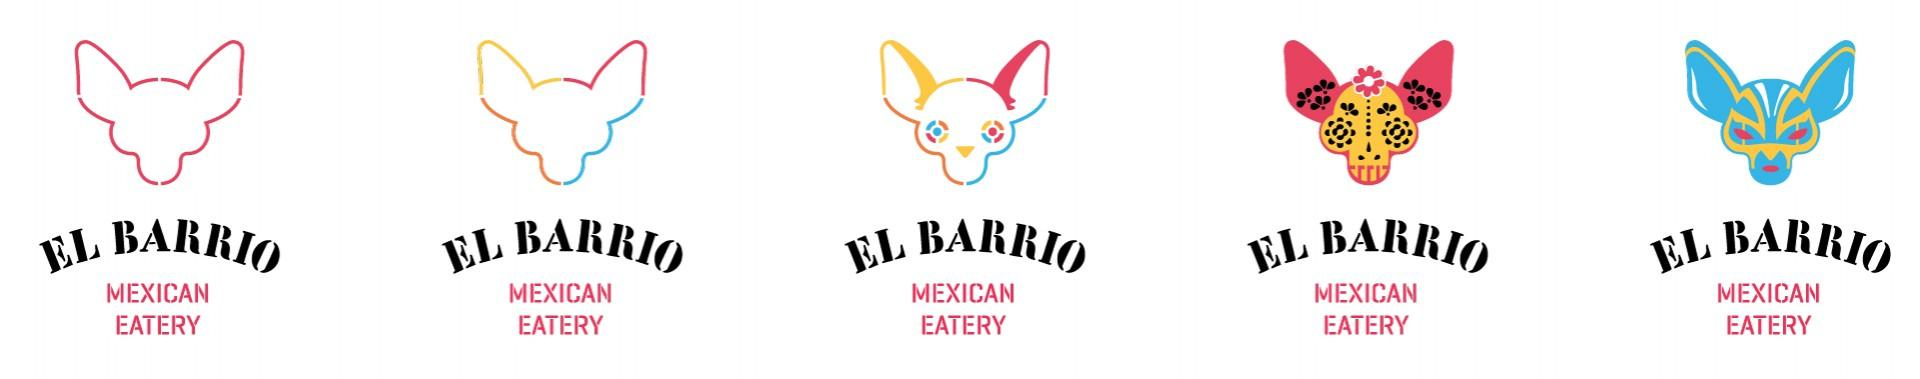 JOIE_BRANDS_EL_BARRIO_FACES